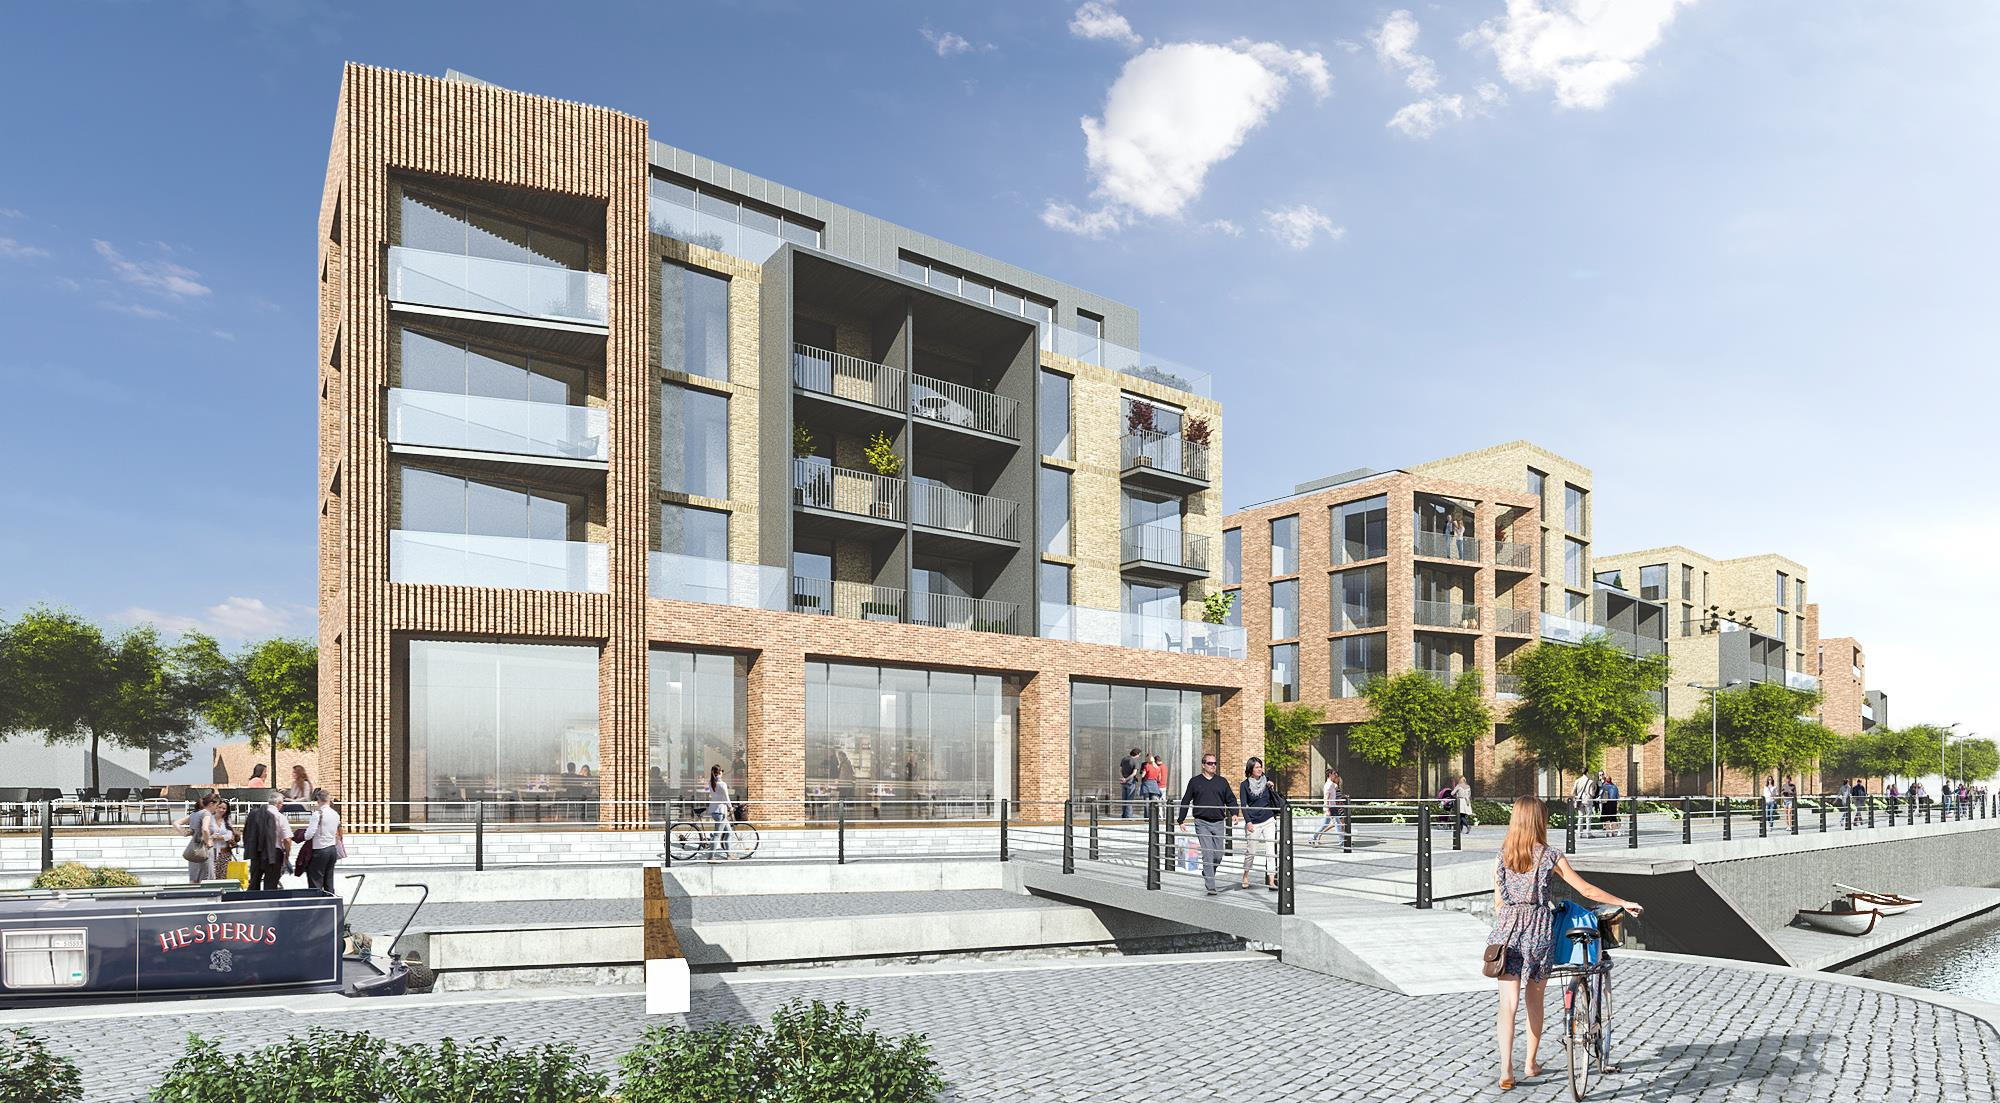 Proposed Meadow Lane - Courtesy of BDP Architects